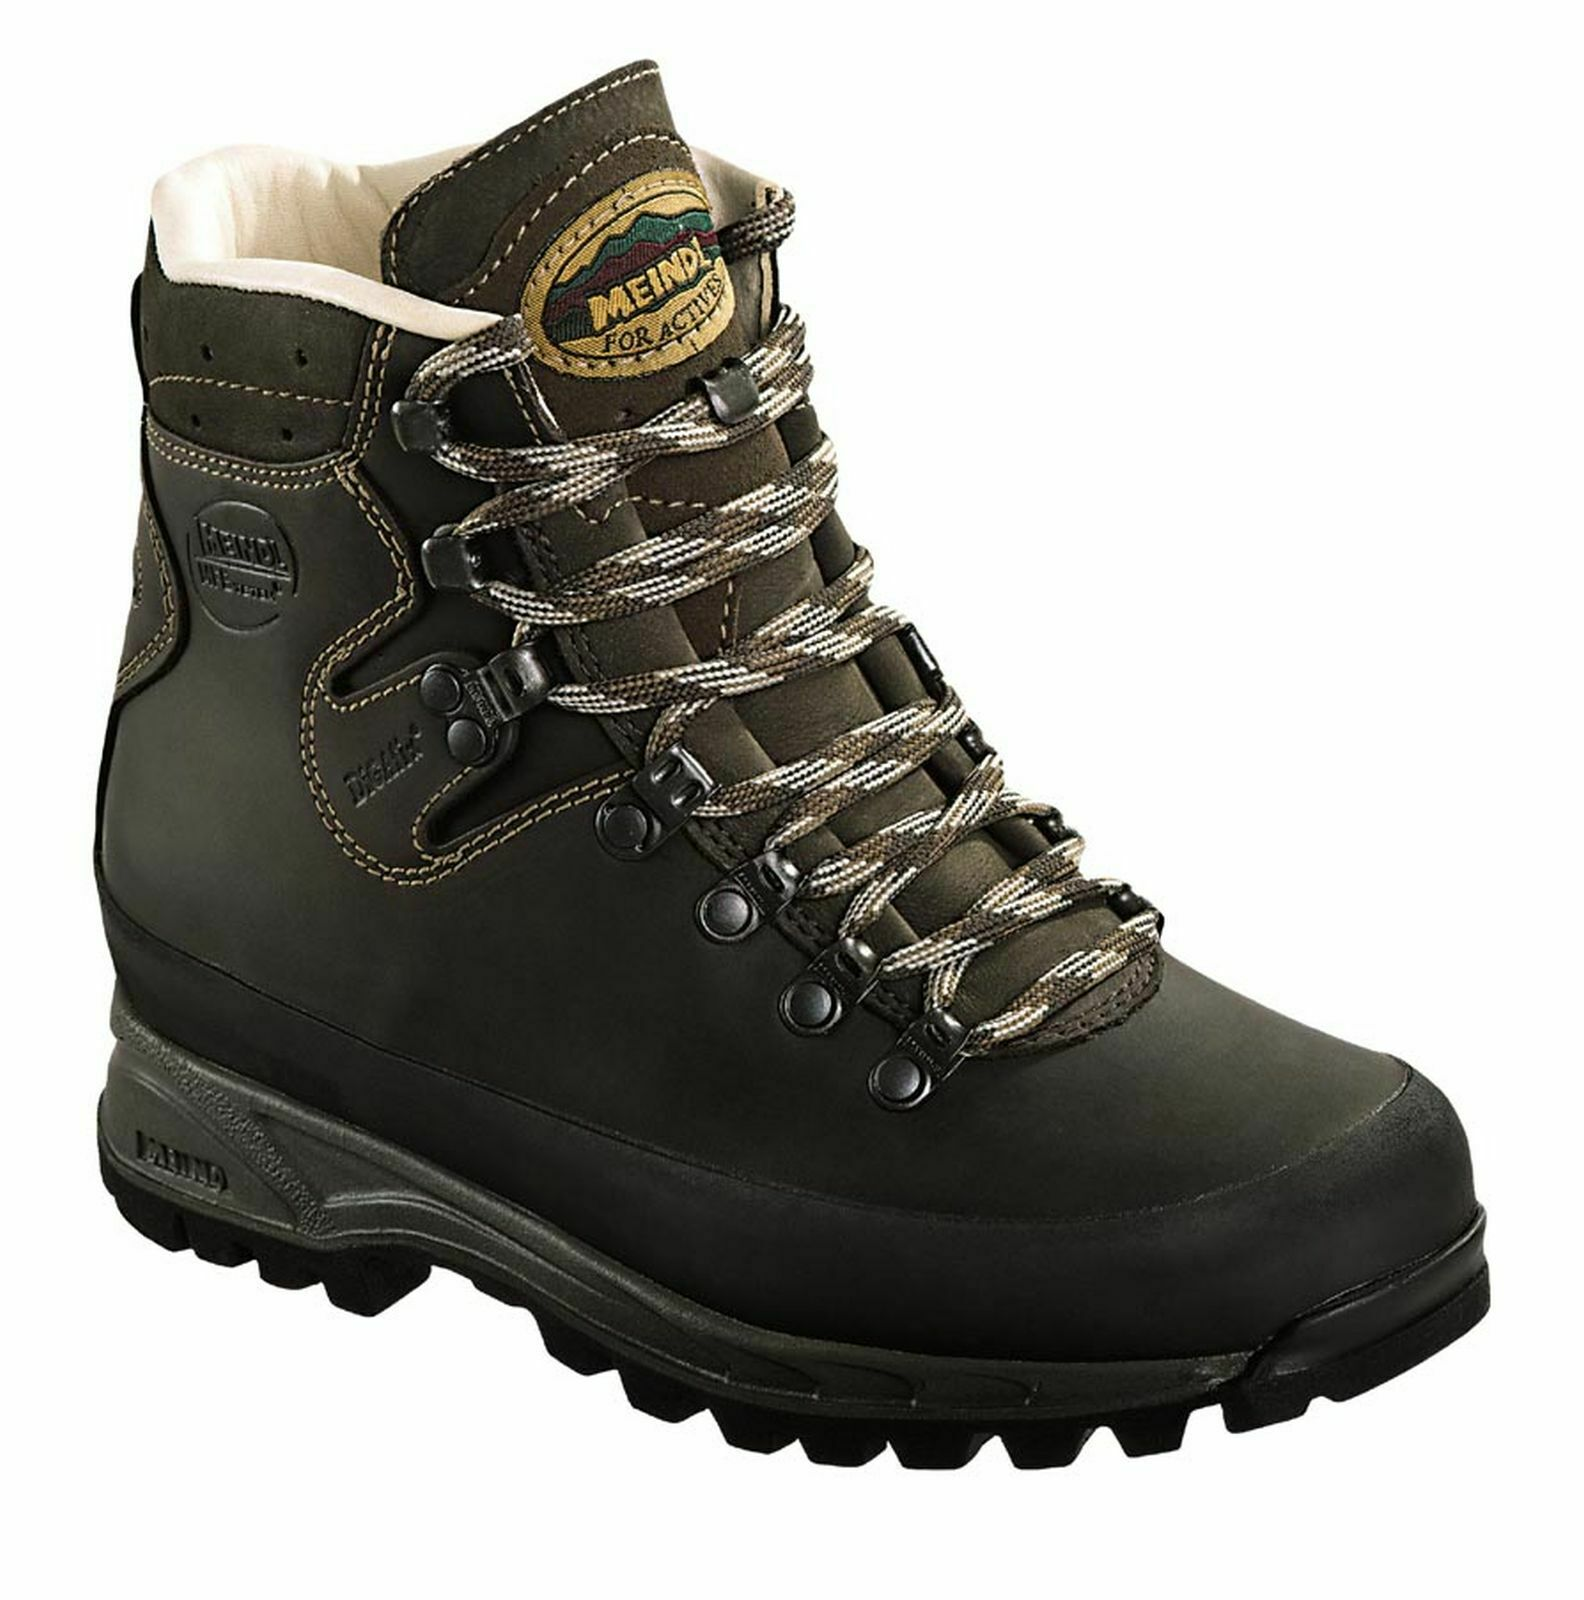 Meindl ladies hiking and trekking boots Engadin Woman MFS  altloden  best-selling